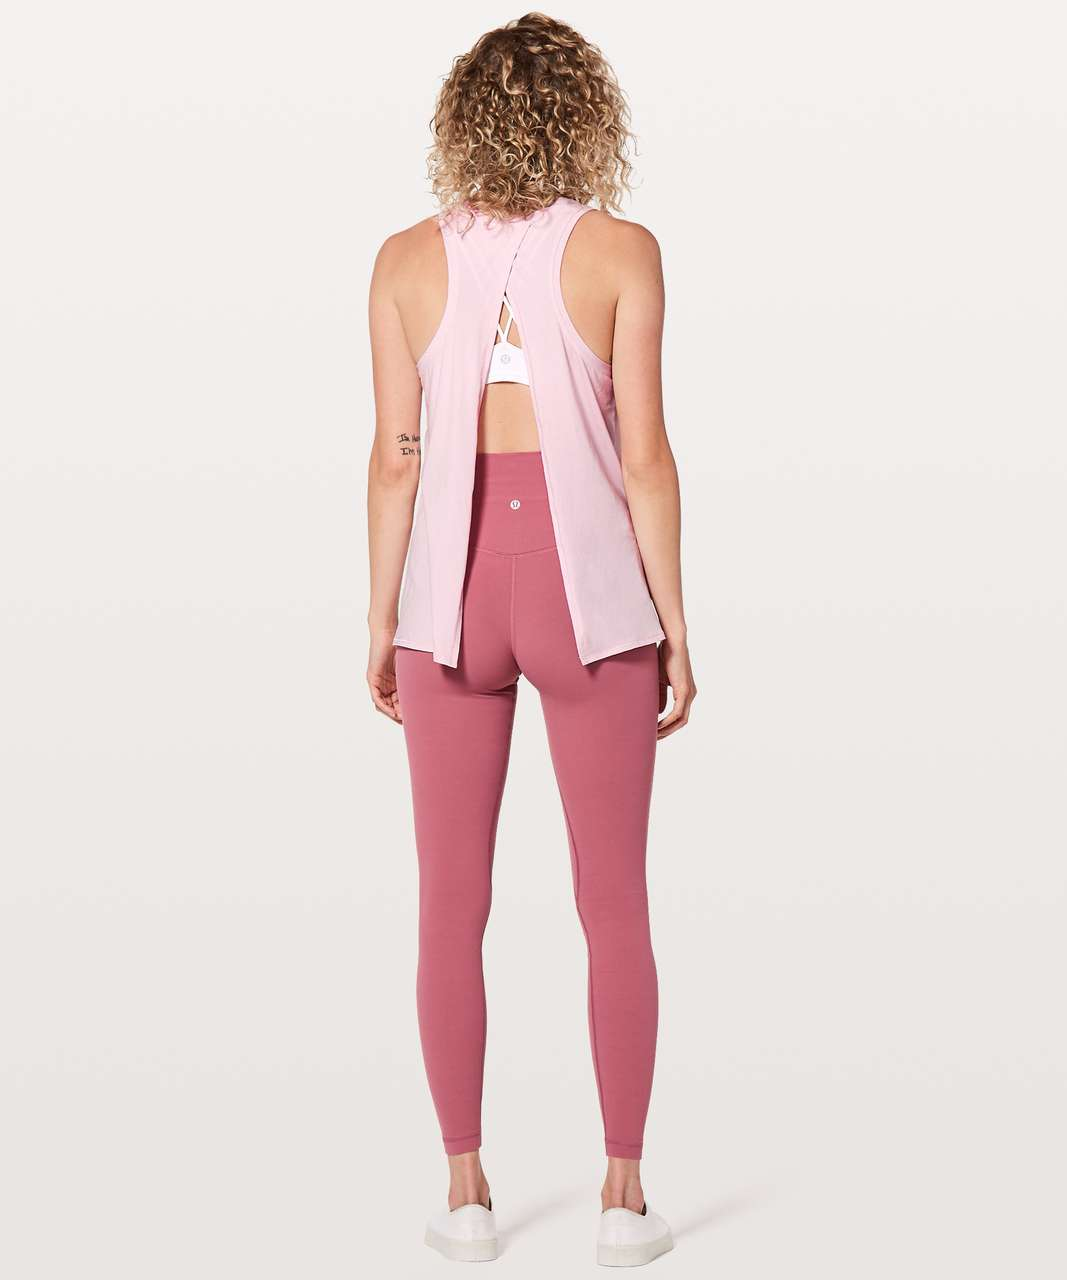 Lululemon All Tied Up Tank - Petals